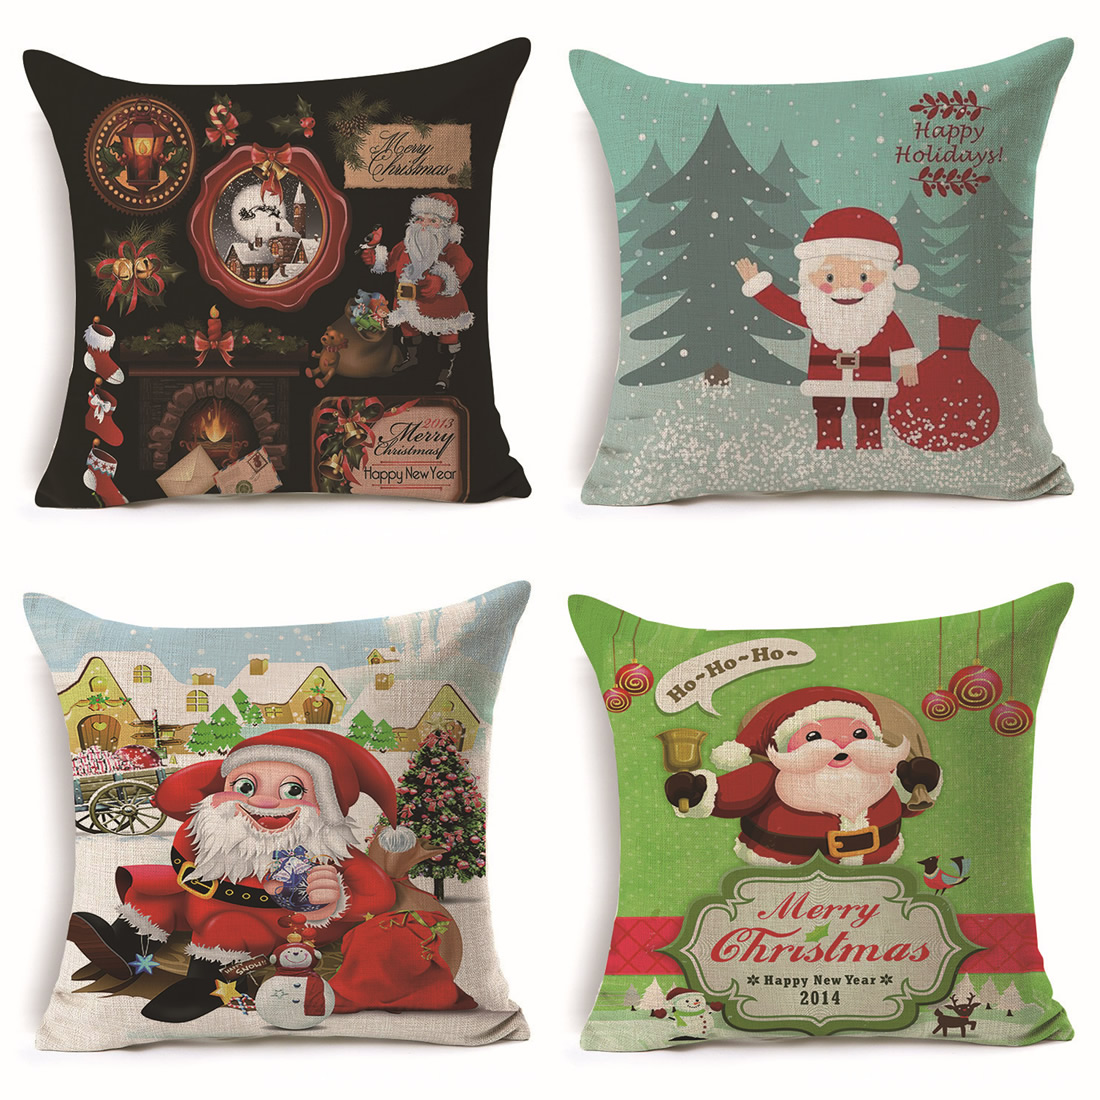 Flax Christmas Cushion Cover Pillow Case Pillowcase Decorative Throw Cover Home Textile Decorative 450x450mm F